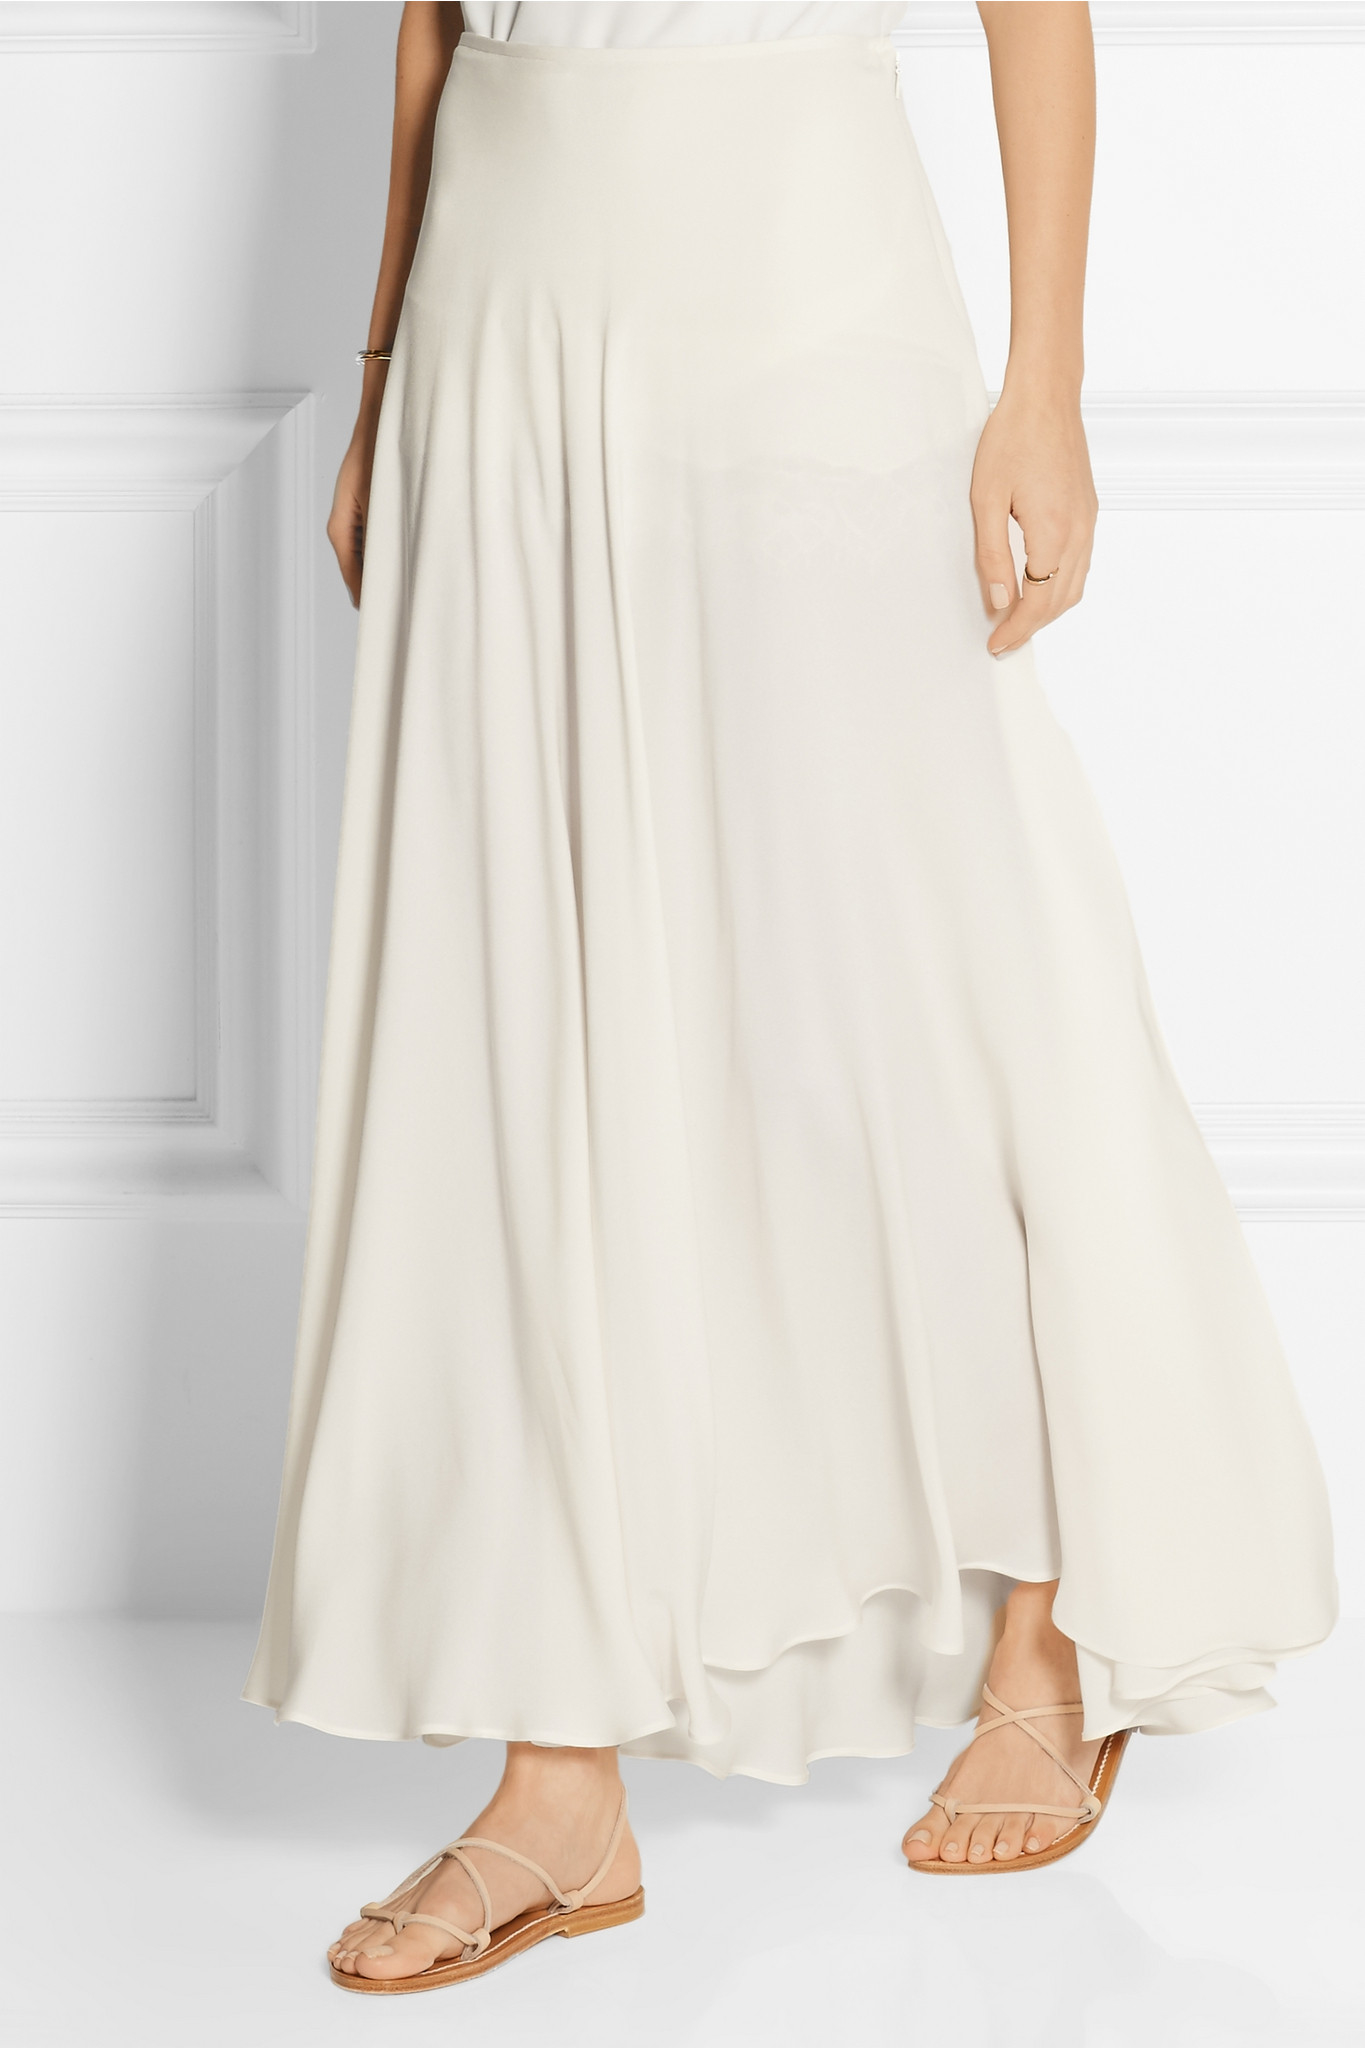 Elie saab Silk-blend Crepe Maxi Skirt in White | Lyst